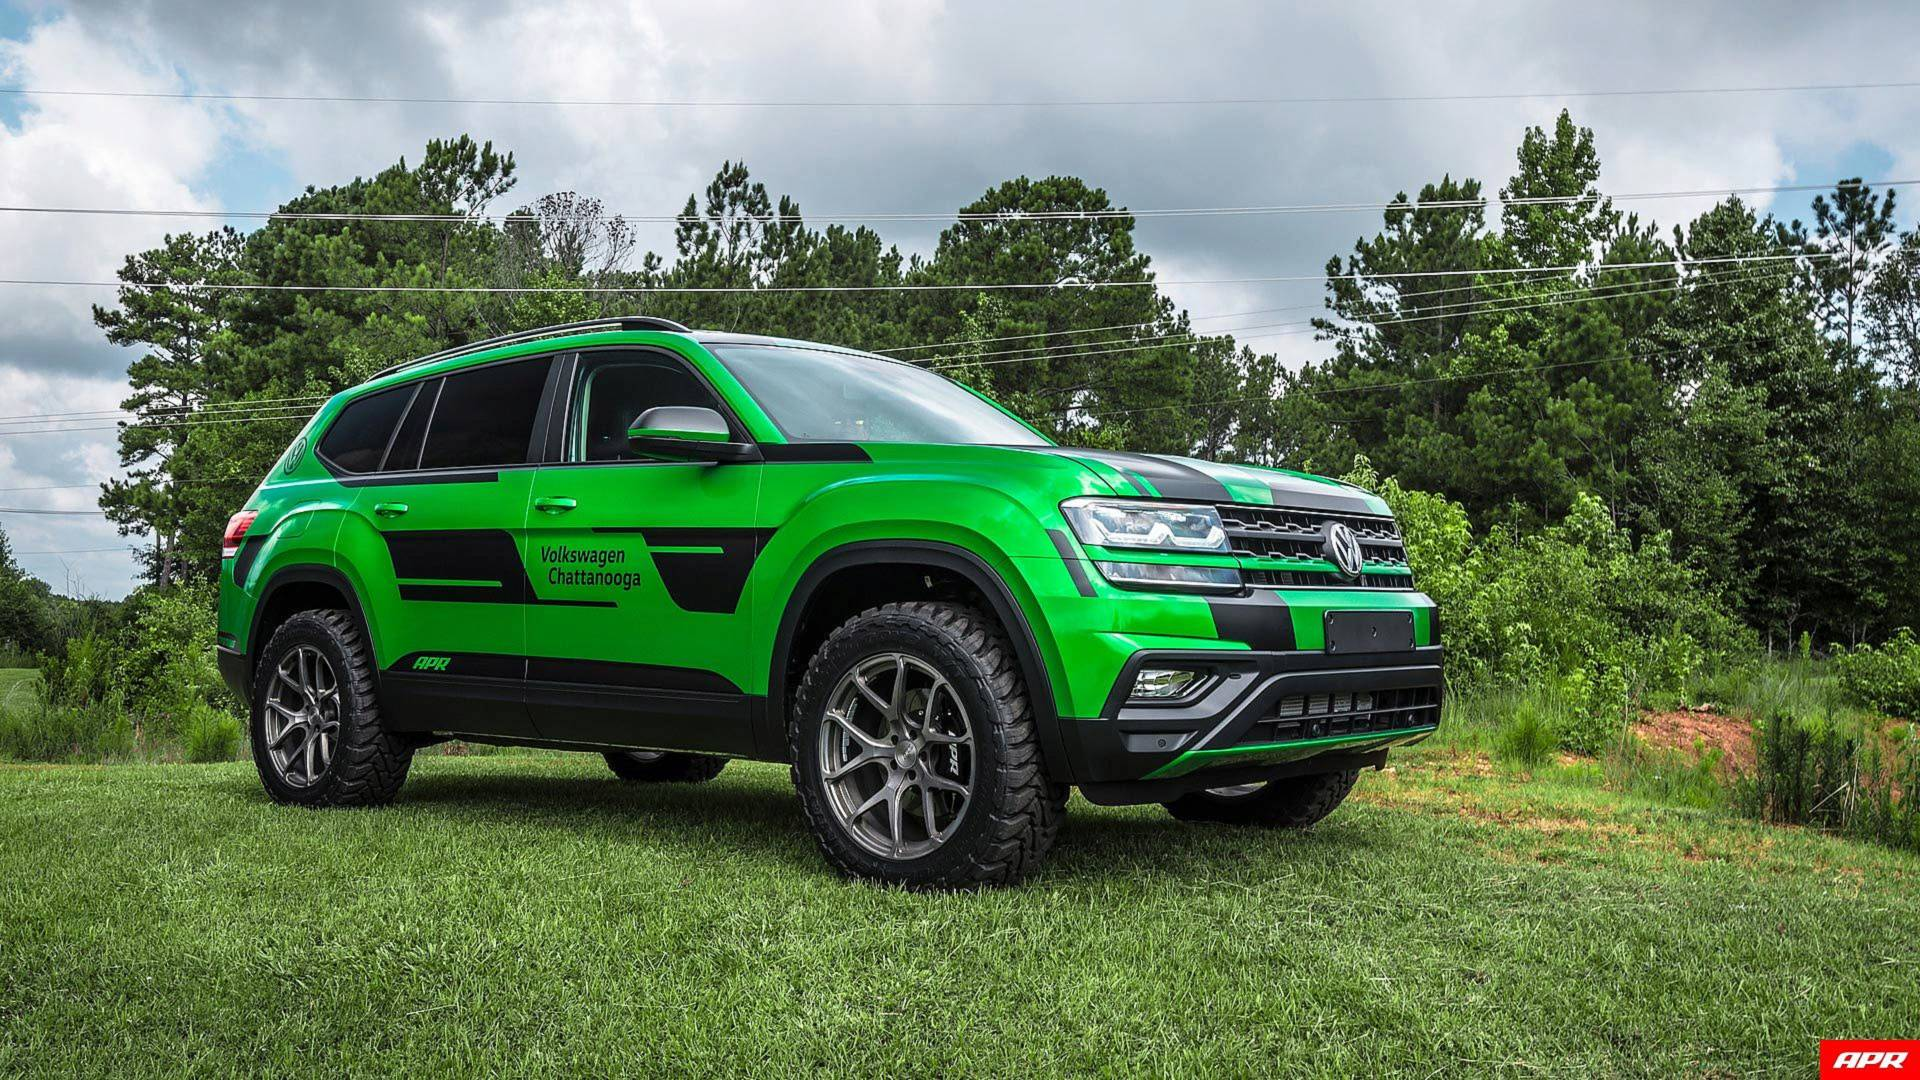 Tuner Transforms Vw Atlas Into Lifted 350 Hp Performance Suv